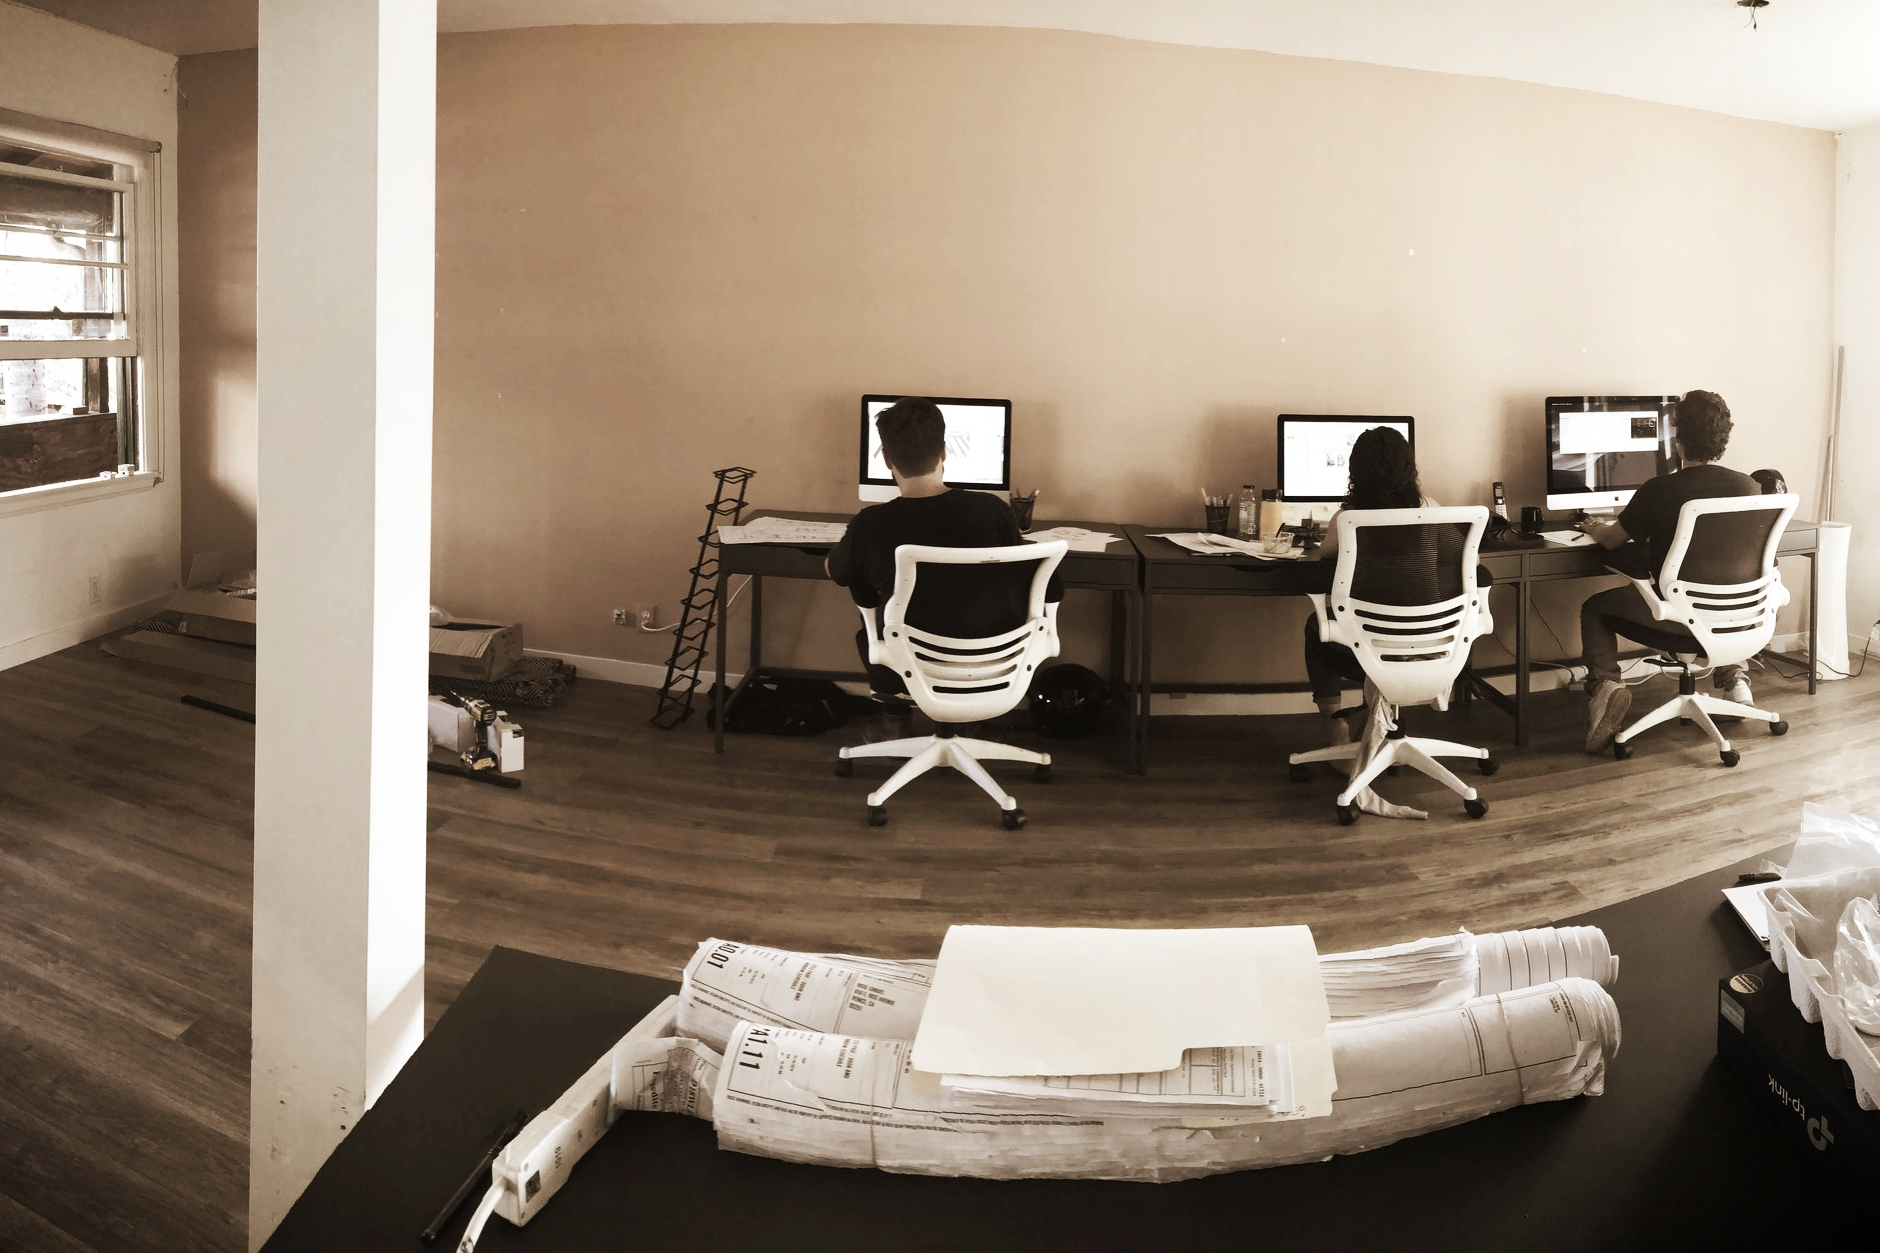 New floors installed. Throughout the remodel, designers working away.